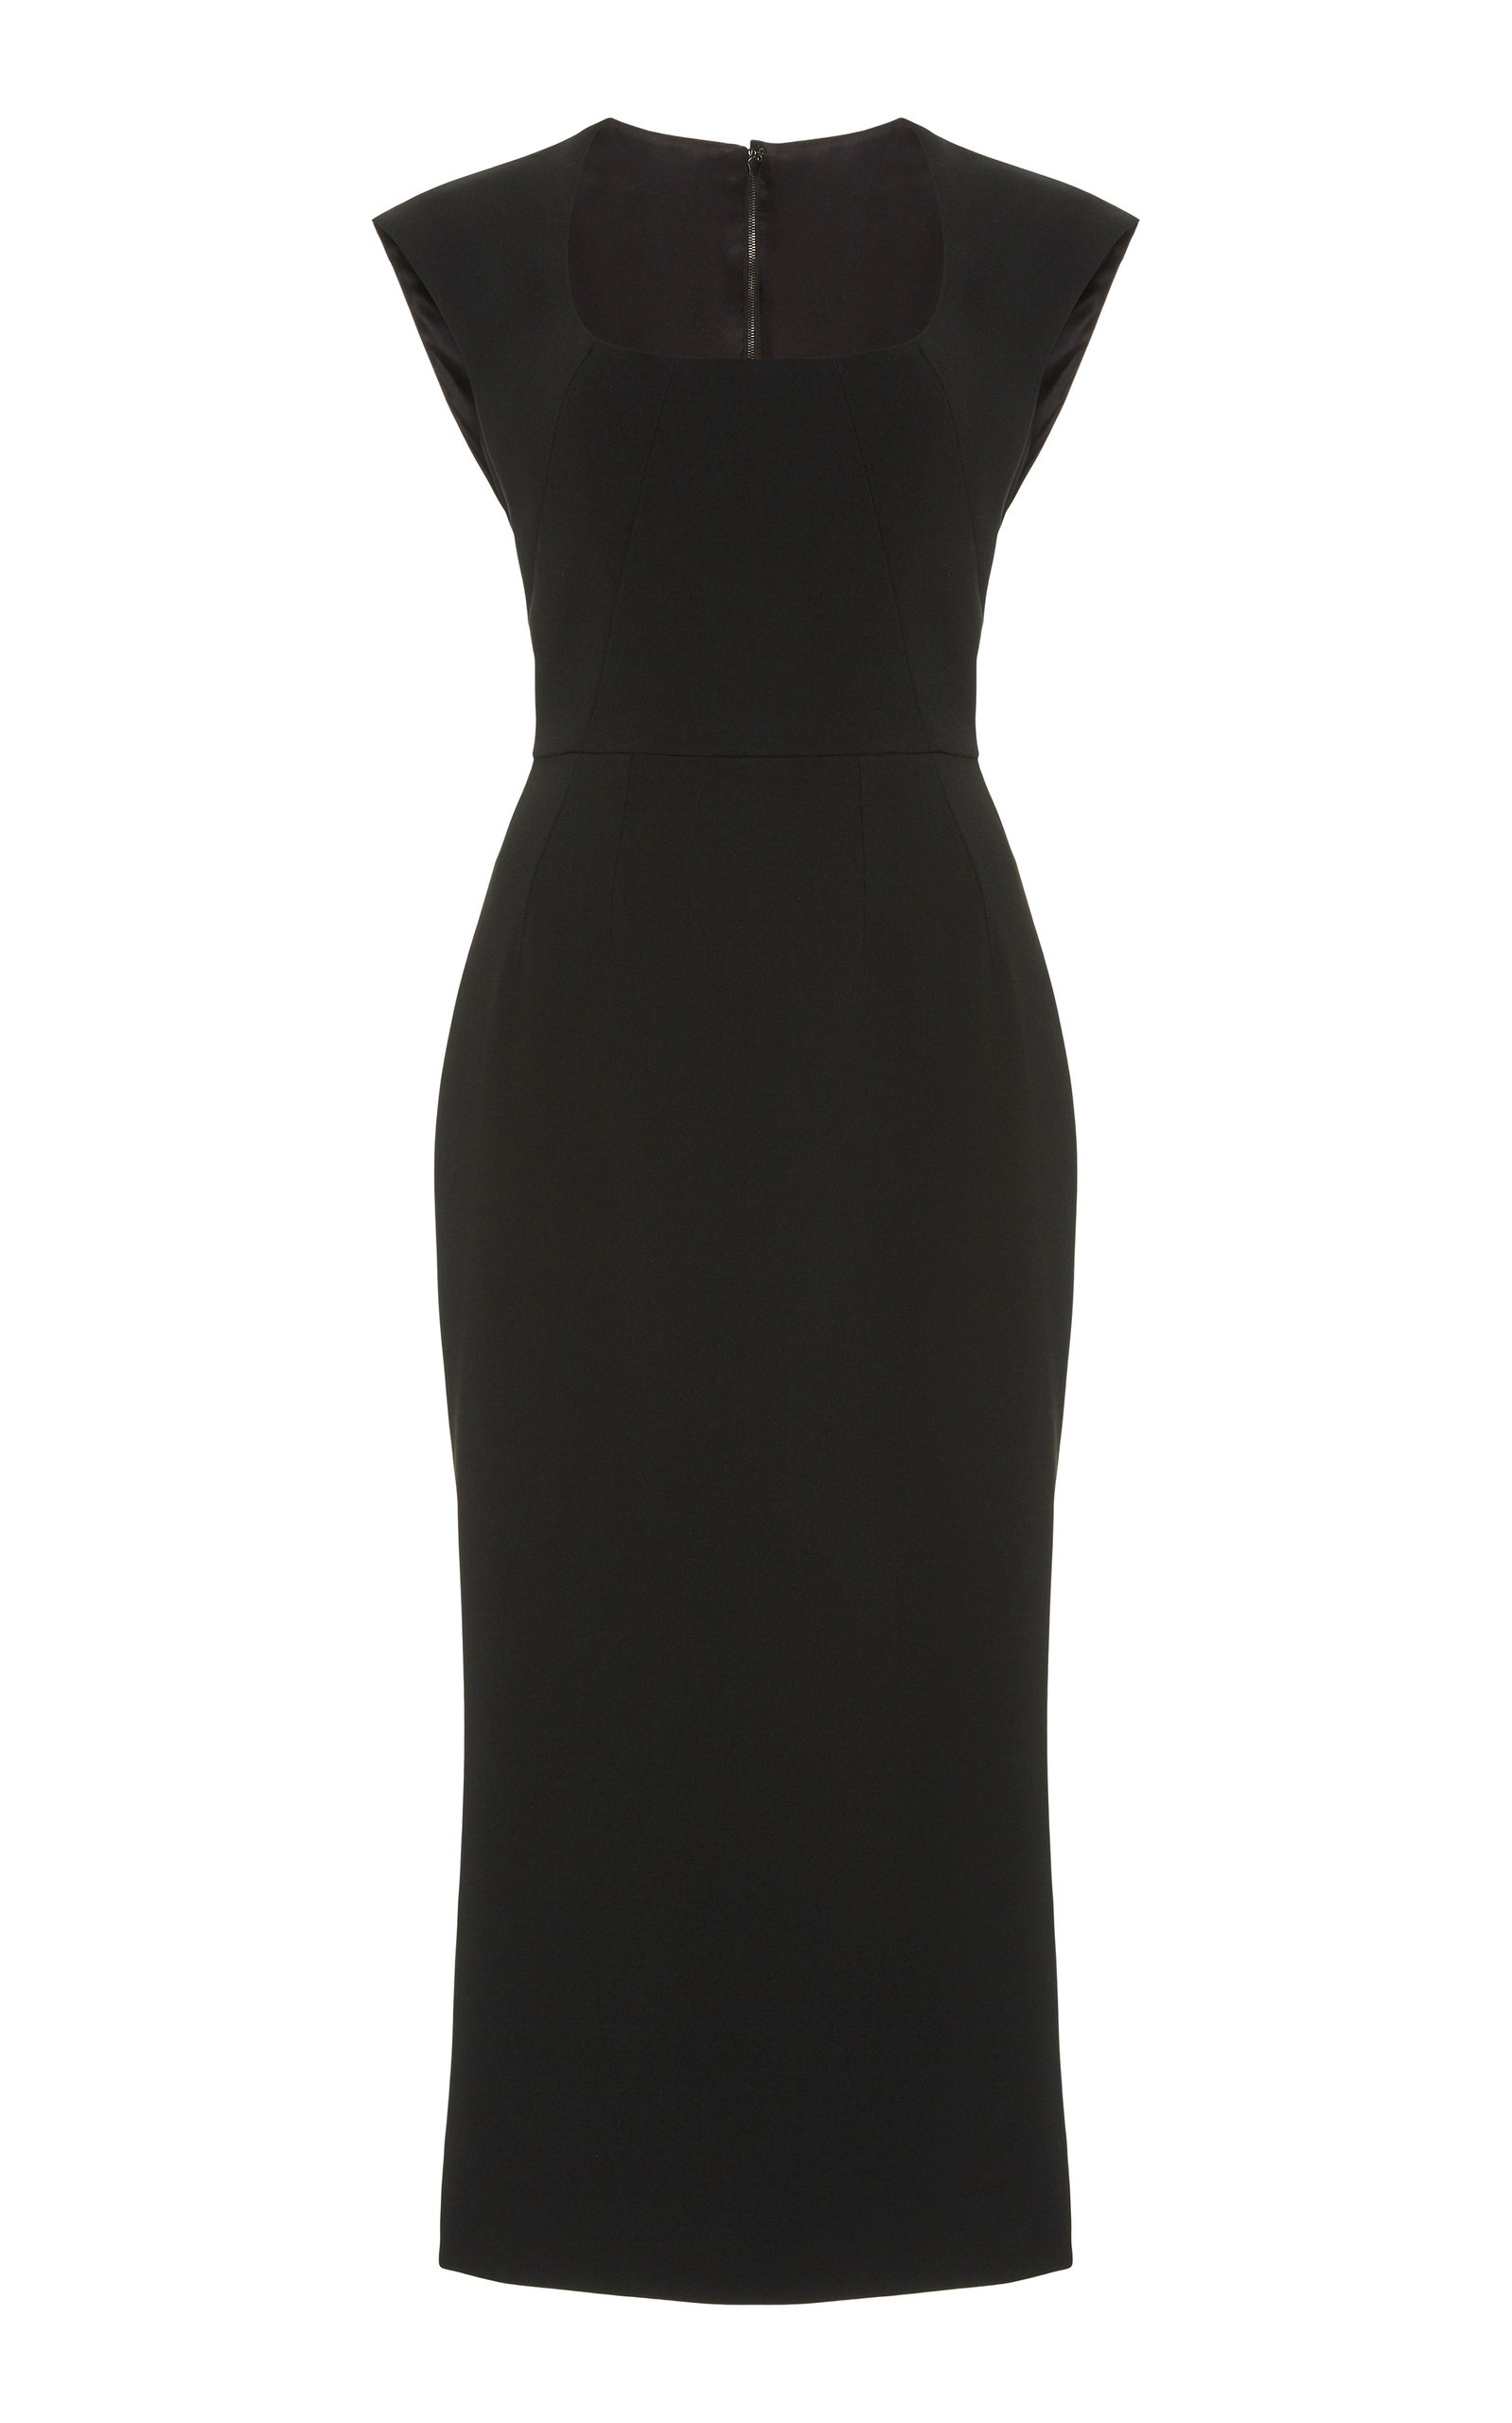 Buy Dolce & Gabbana Cady Midi Dress online, shop Dolce & Gabbana at the best price